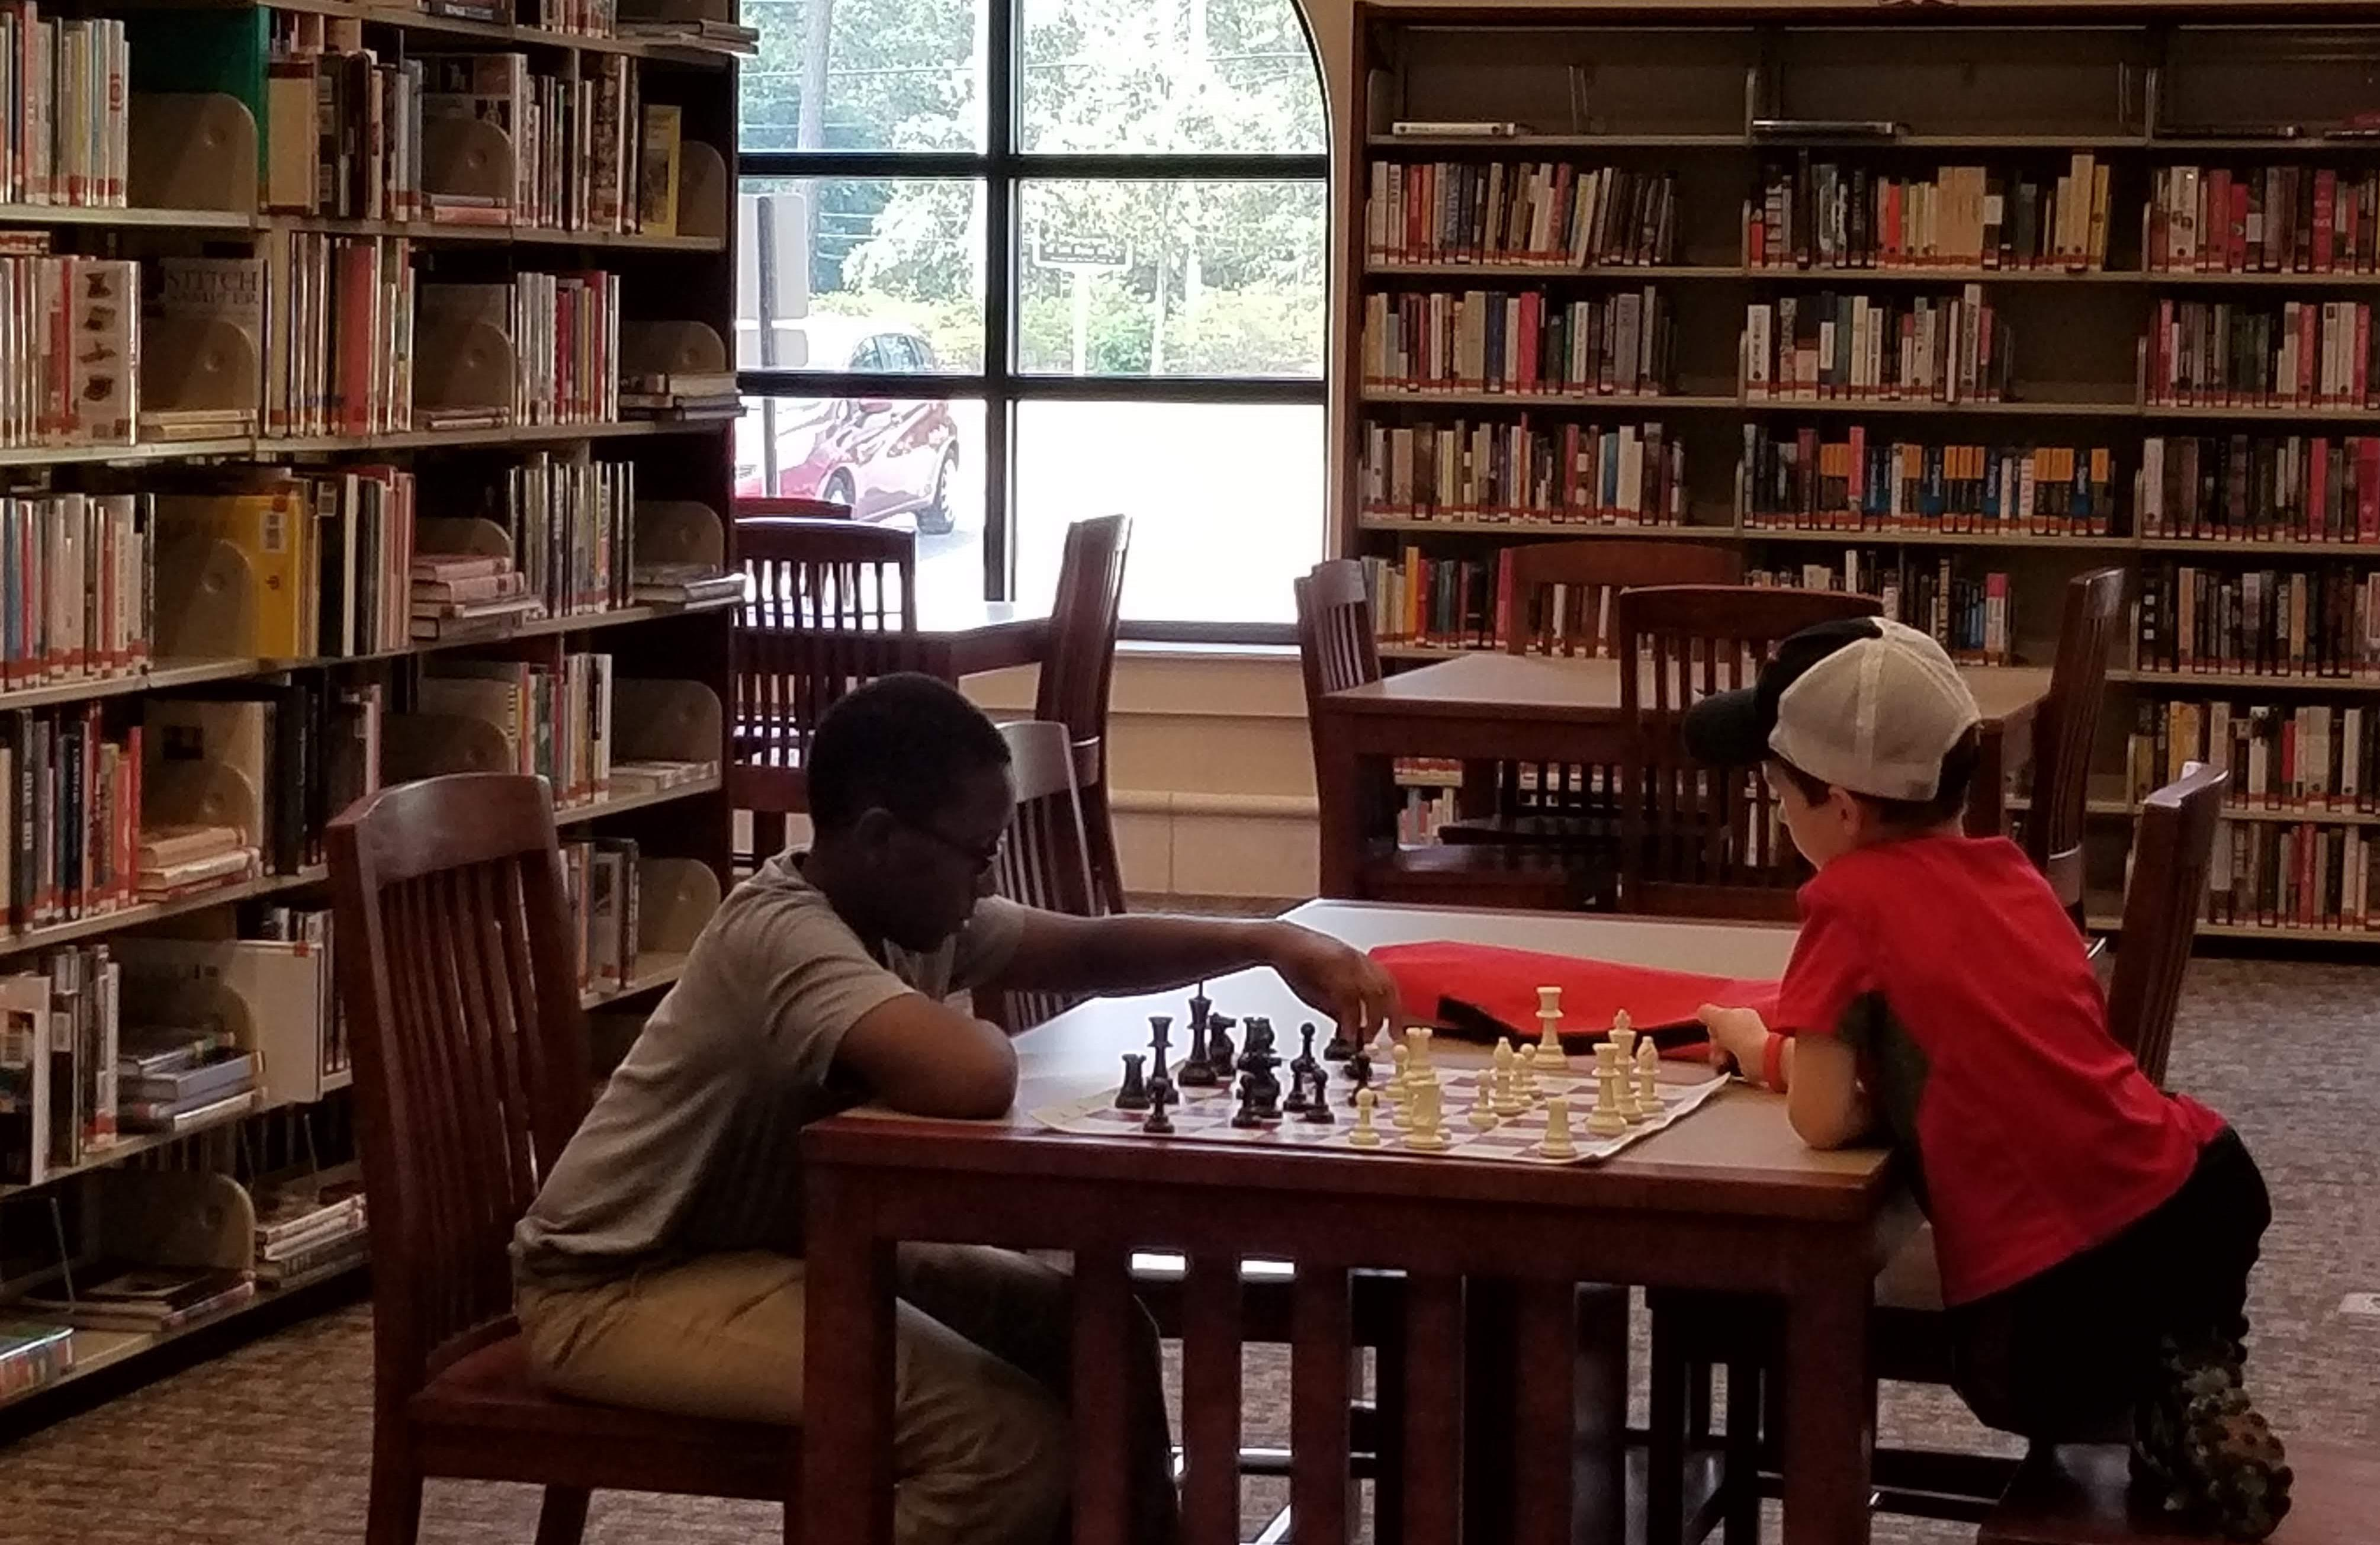 Two young boys playing chess at a table inside SFPL